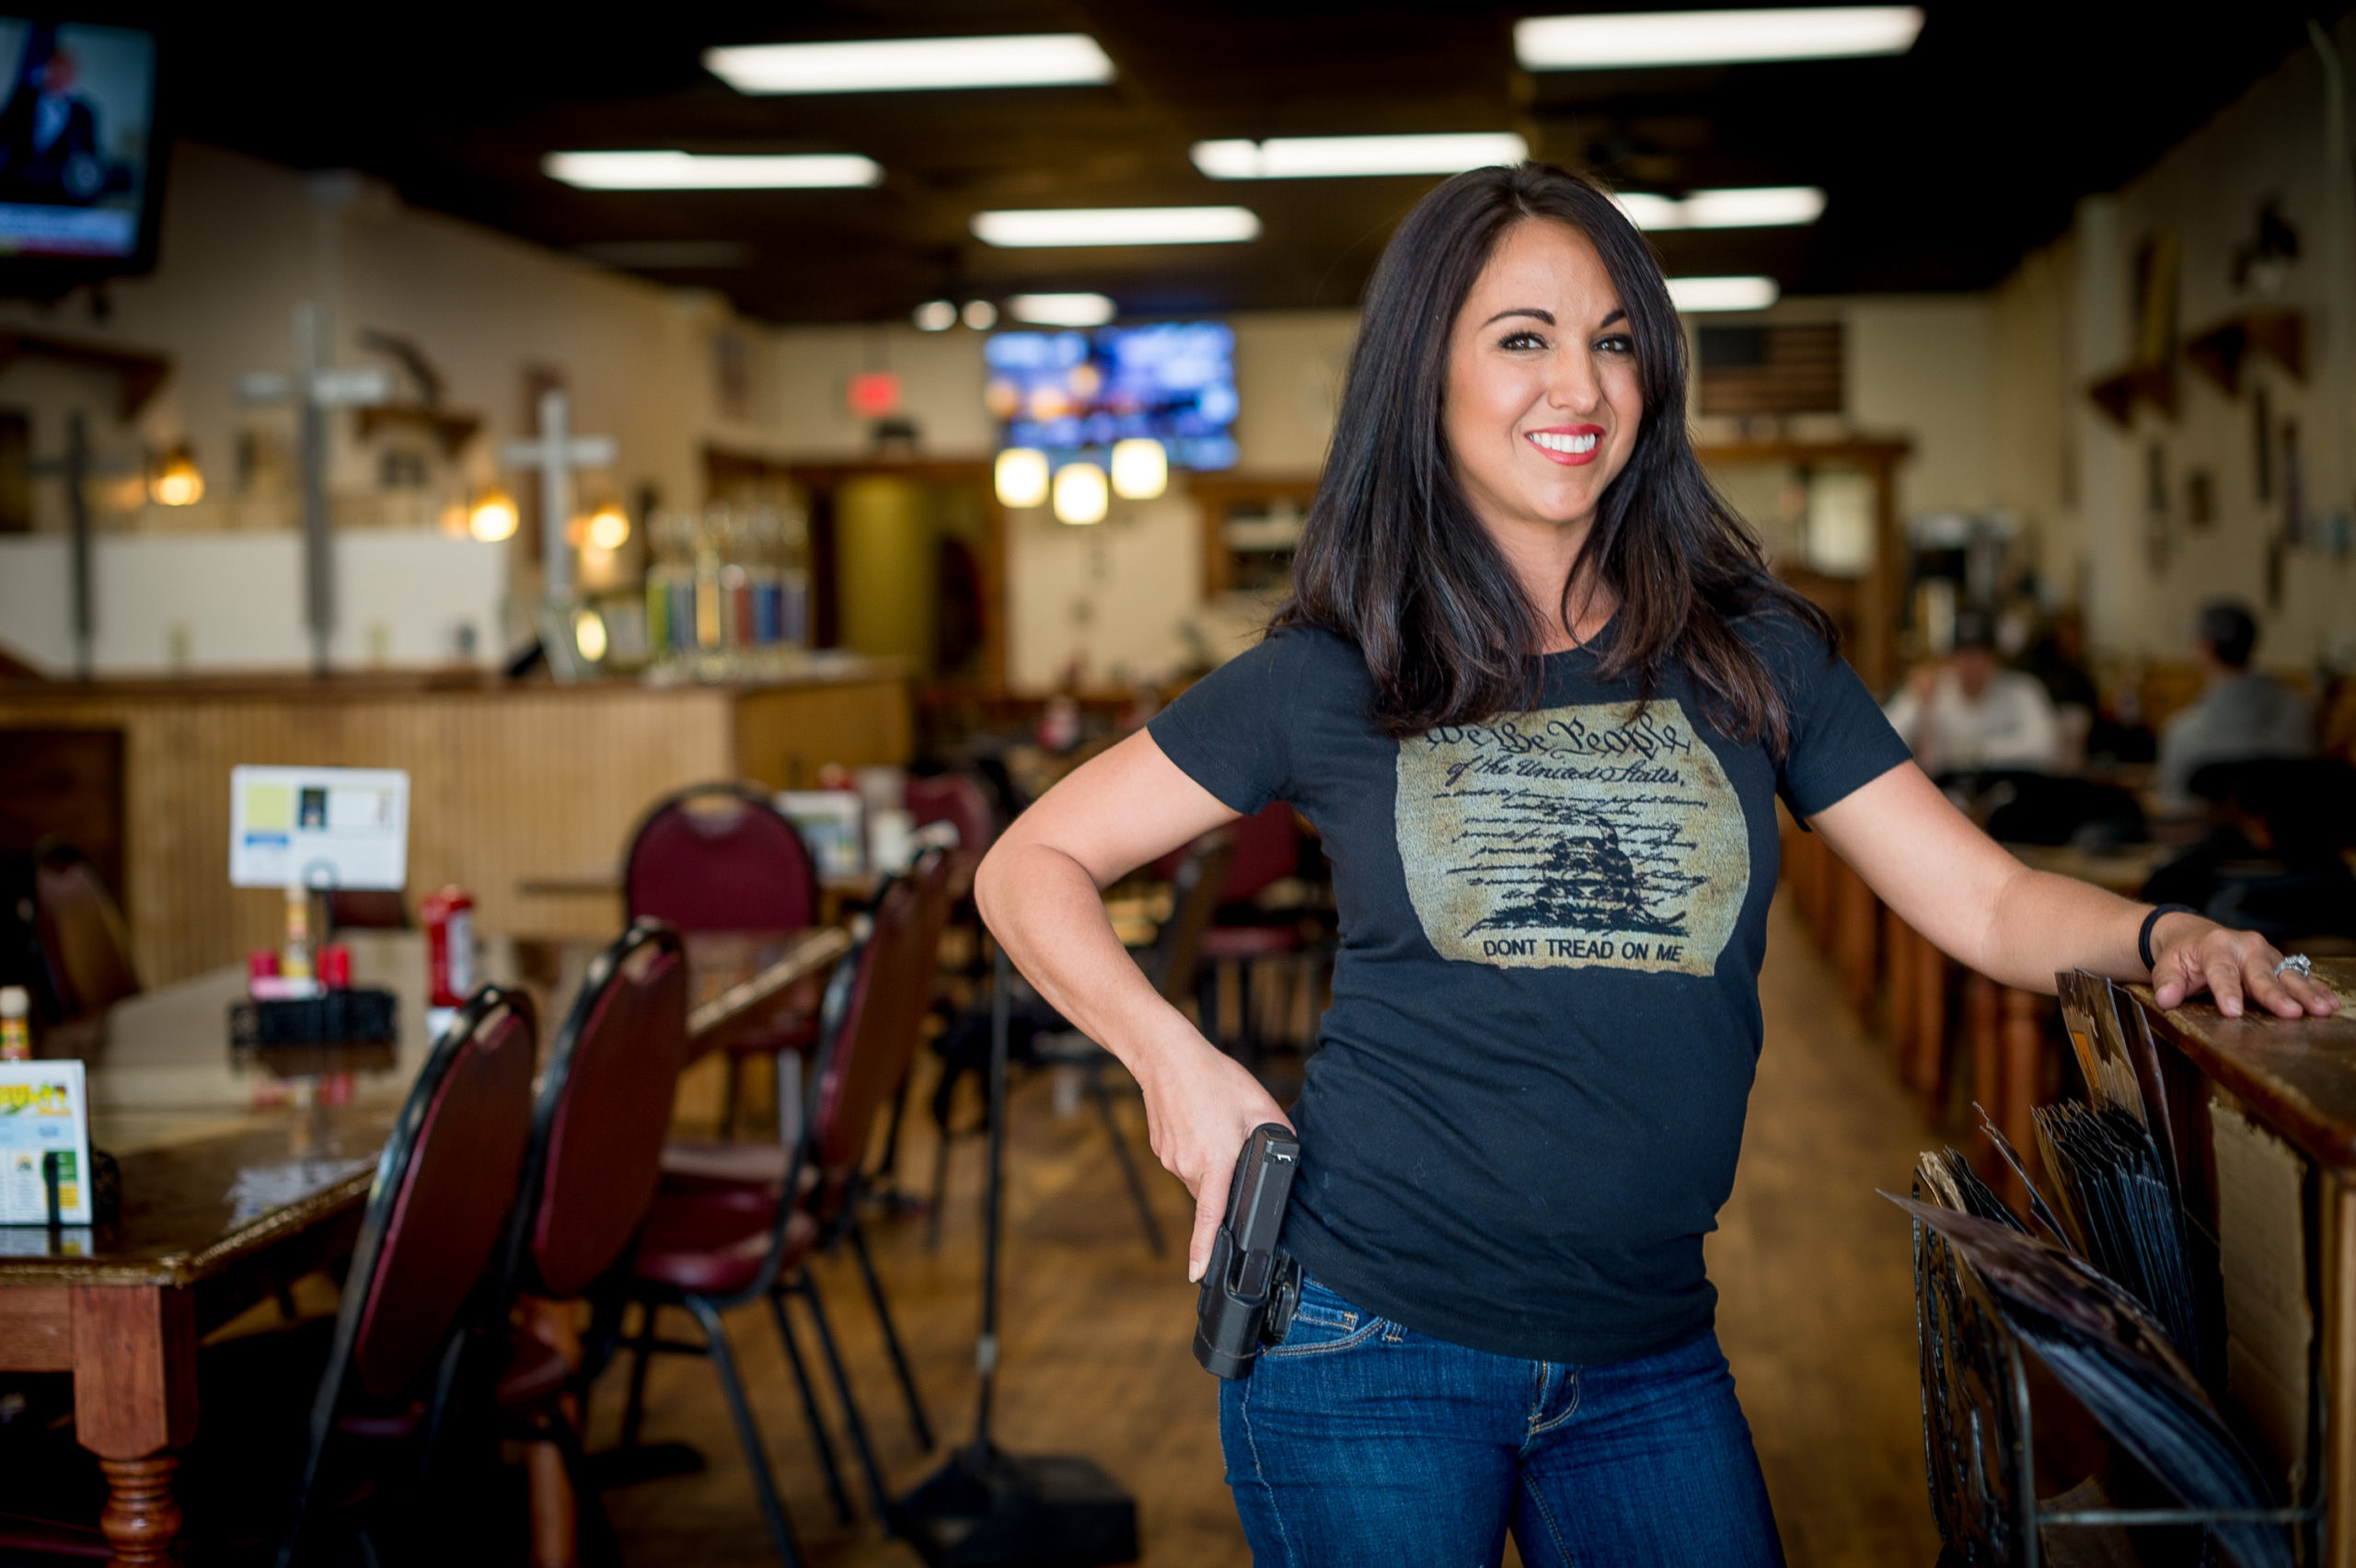 Owner Lauren Boebert poses for a portrait at Shooters Grill in Rifle, Colorado on April 24, 2018. - Lauren Boebert opened Shooters Grill in 2013 with her husband Jason in the small town of Rifle, Colorado, the only city in the United States named after a gun according to them. Shortly after Boebert opened the restaurant, there was a murder in the alley behind it. Boebert went next door to the Tradesmen Gun Store and Pawnshop to speak to the owner, Edward Wilks. Wilks explained to her that you dont need a permit in the state of Colorado to open carry. The next day she started carrying a gun with her. The majority of her staff carries, while it is not a requirement to work there she encourages them to do so if they feel comfortable with it. Customers are also welcome to carry firearms on them as well. The restaurants theme remained heavily country western but revolves alot around the theme of the Second Amendment as well. (EMILY KASK/AFP via Getty Images)